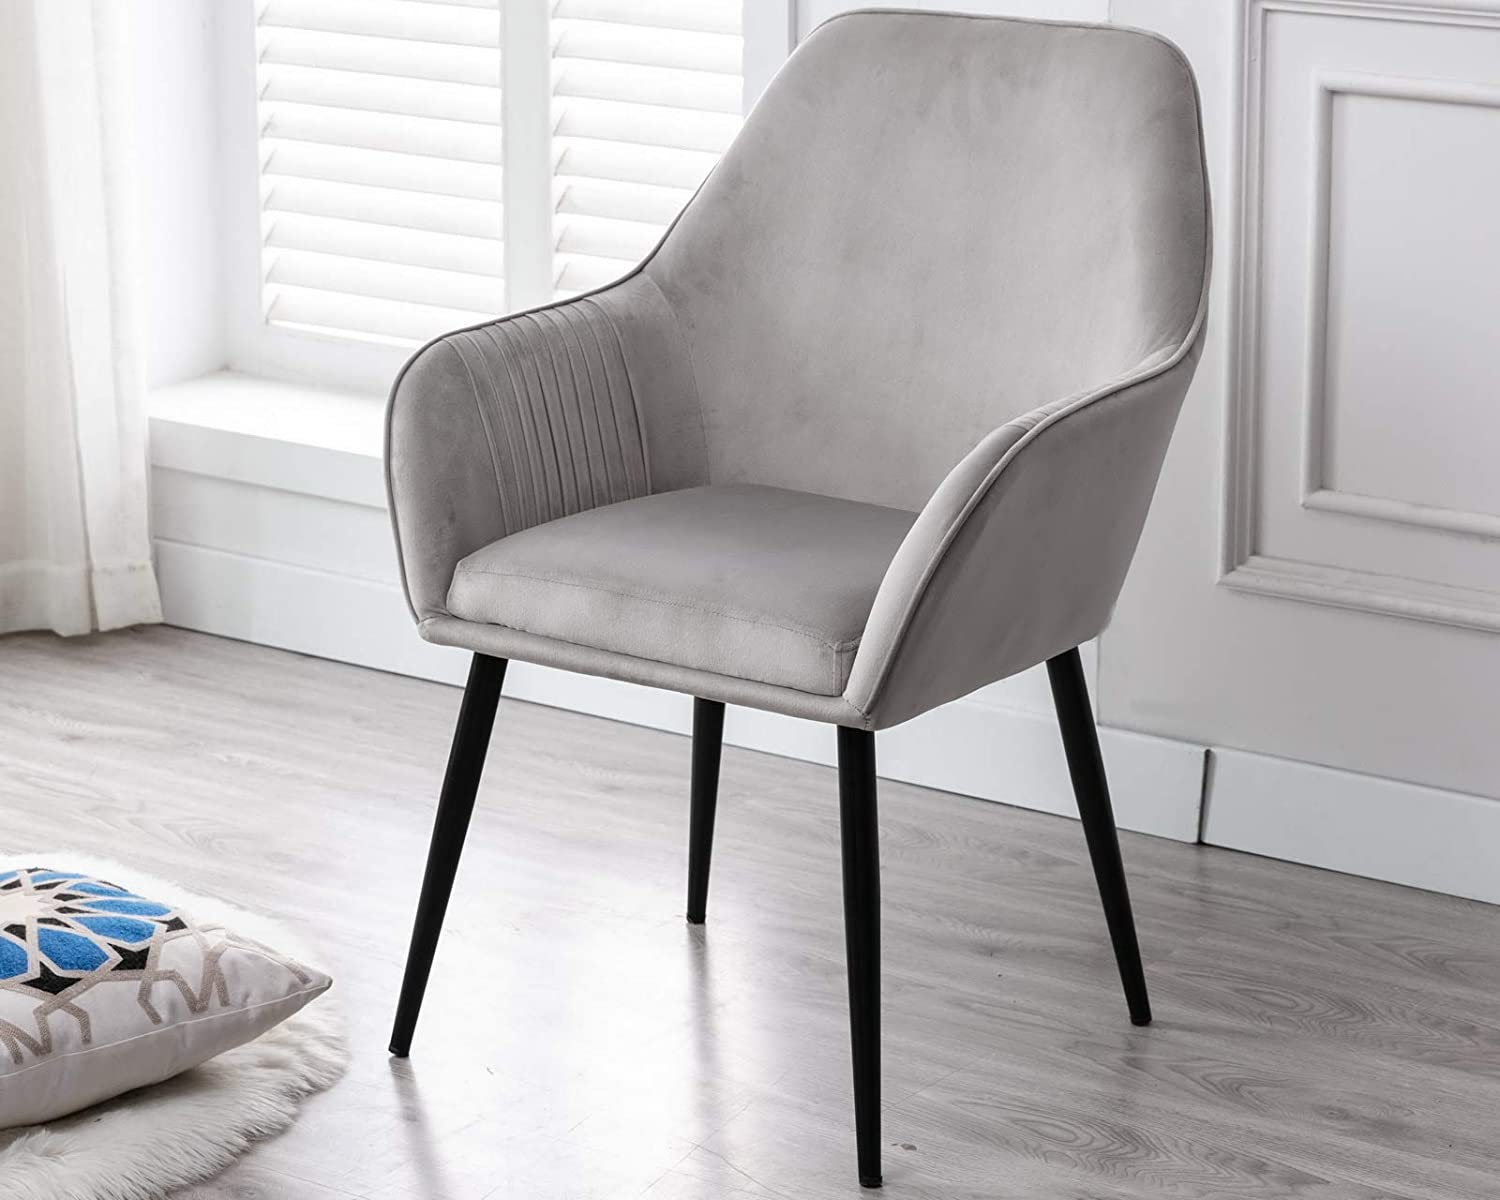 CIMOTA Grey Velvet Accent Chair Modern Upholstered Armchair Comfy Leisure Side Chair Makeup Vanity Chair for Living Room Bedroom Dining Room